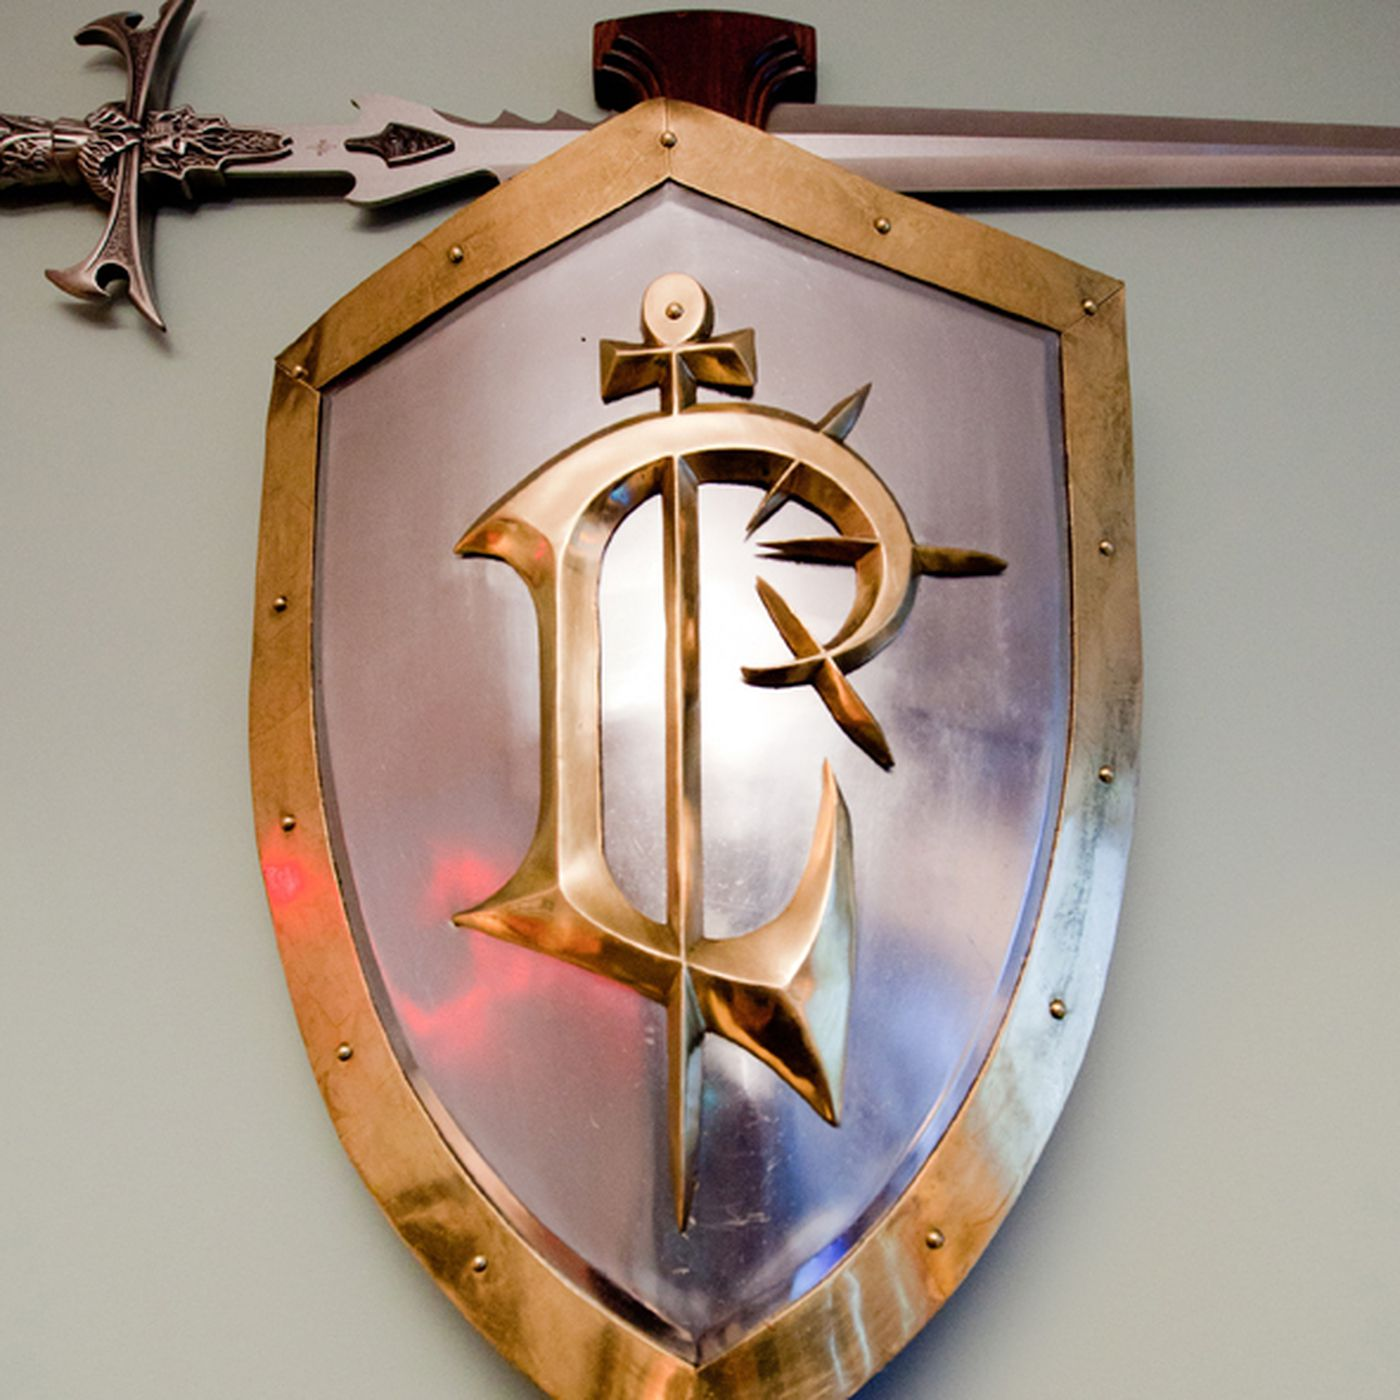 Blizzard Service Award Sword And Shield On Ebay For 20 000 Polygon